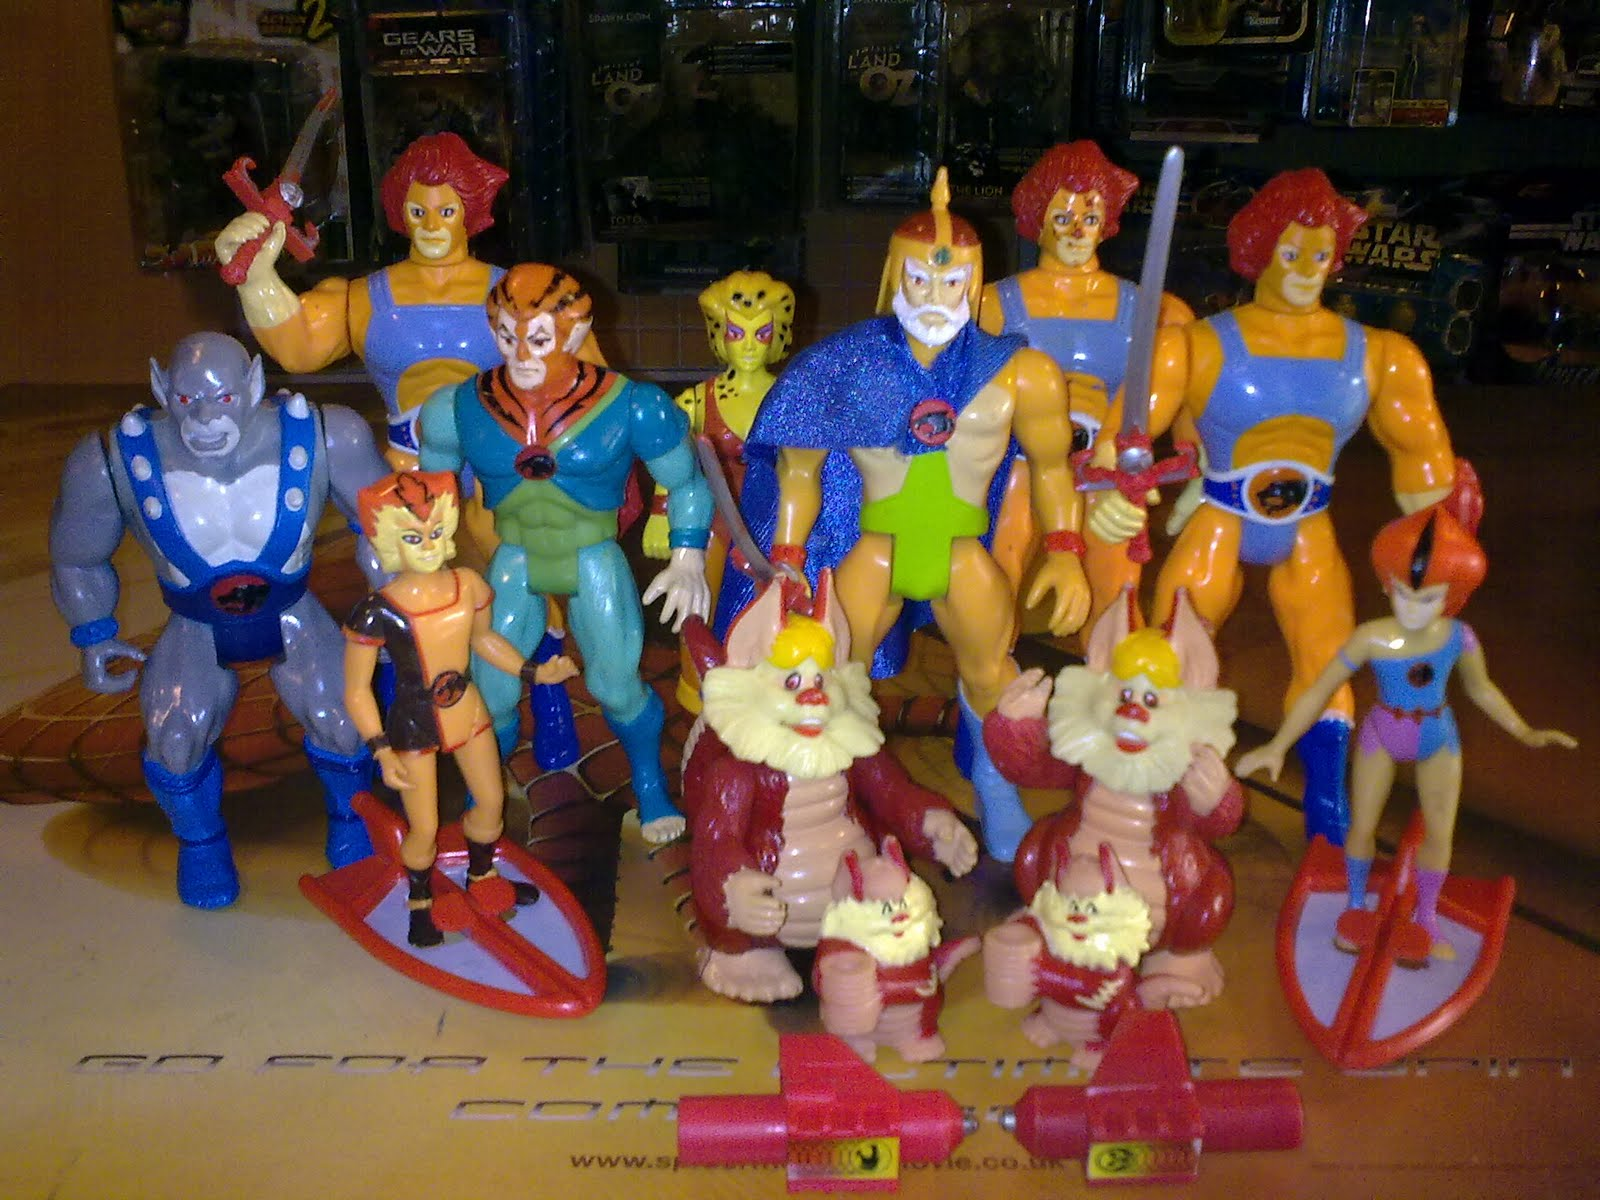 Vintage Toys From The 80s : Toy workers thundercats s vintage figure landed in